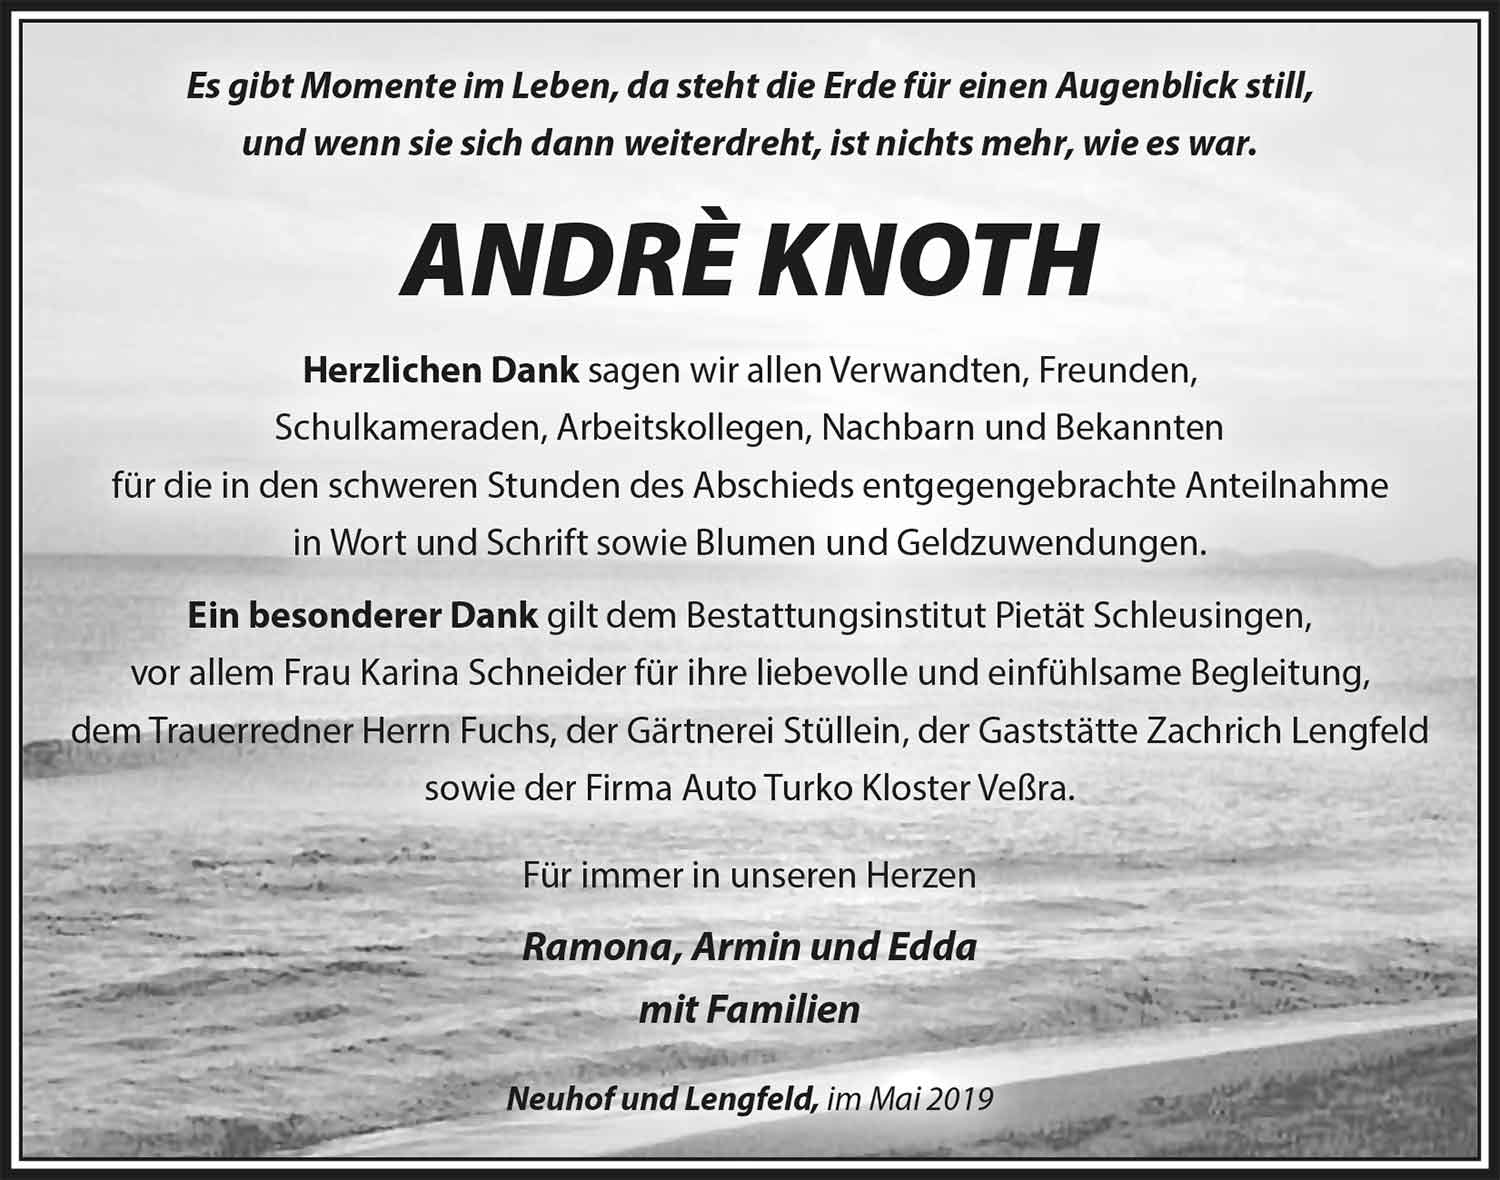 Dank-Knoth-Andre-19-19